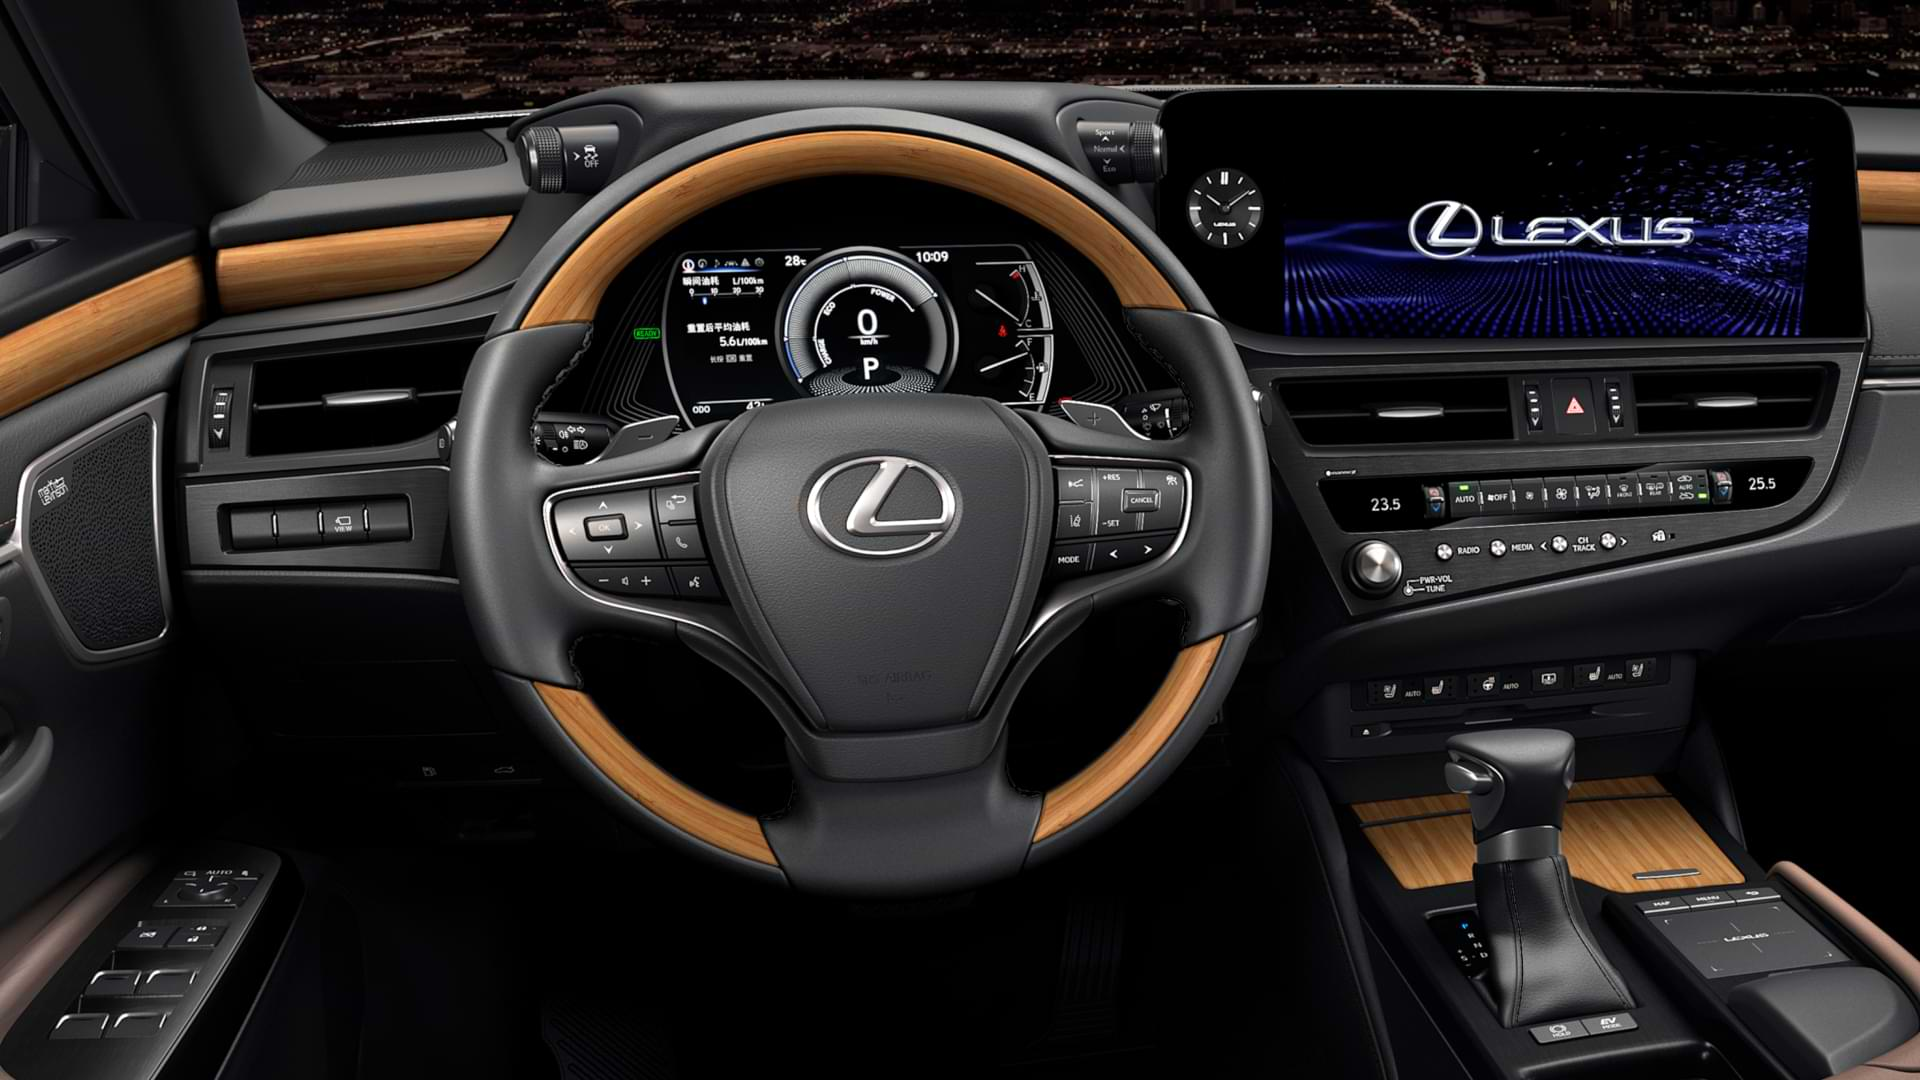 Steering wheel and dashboard of 2021 Lexus ES